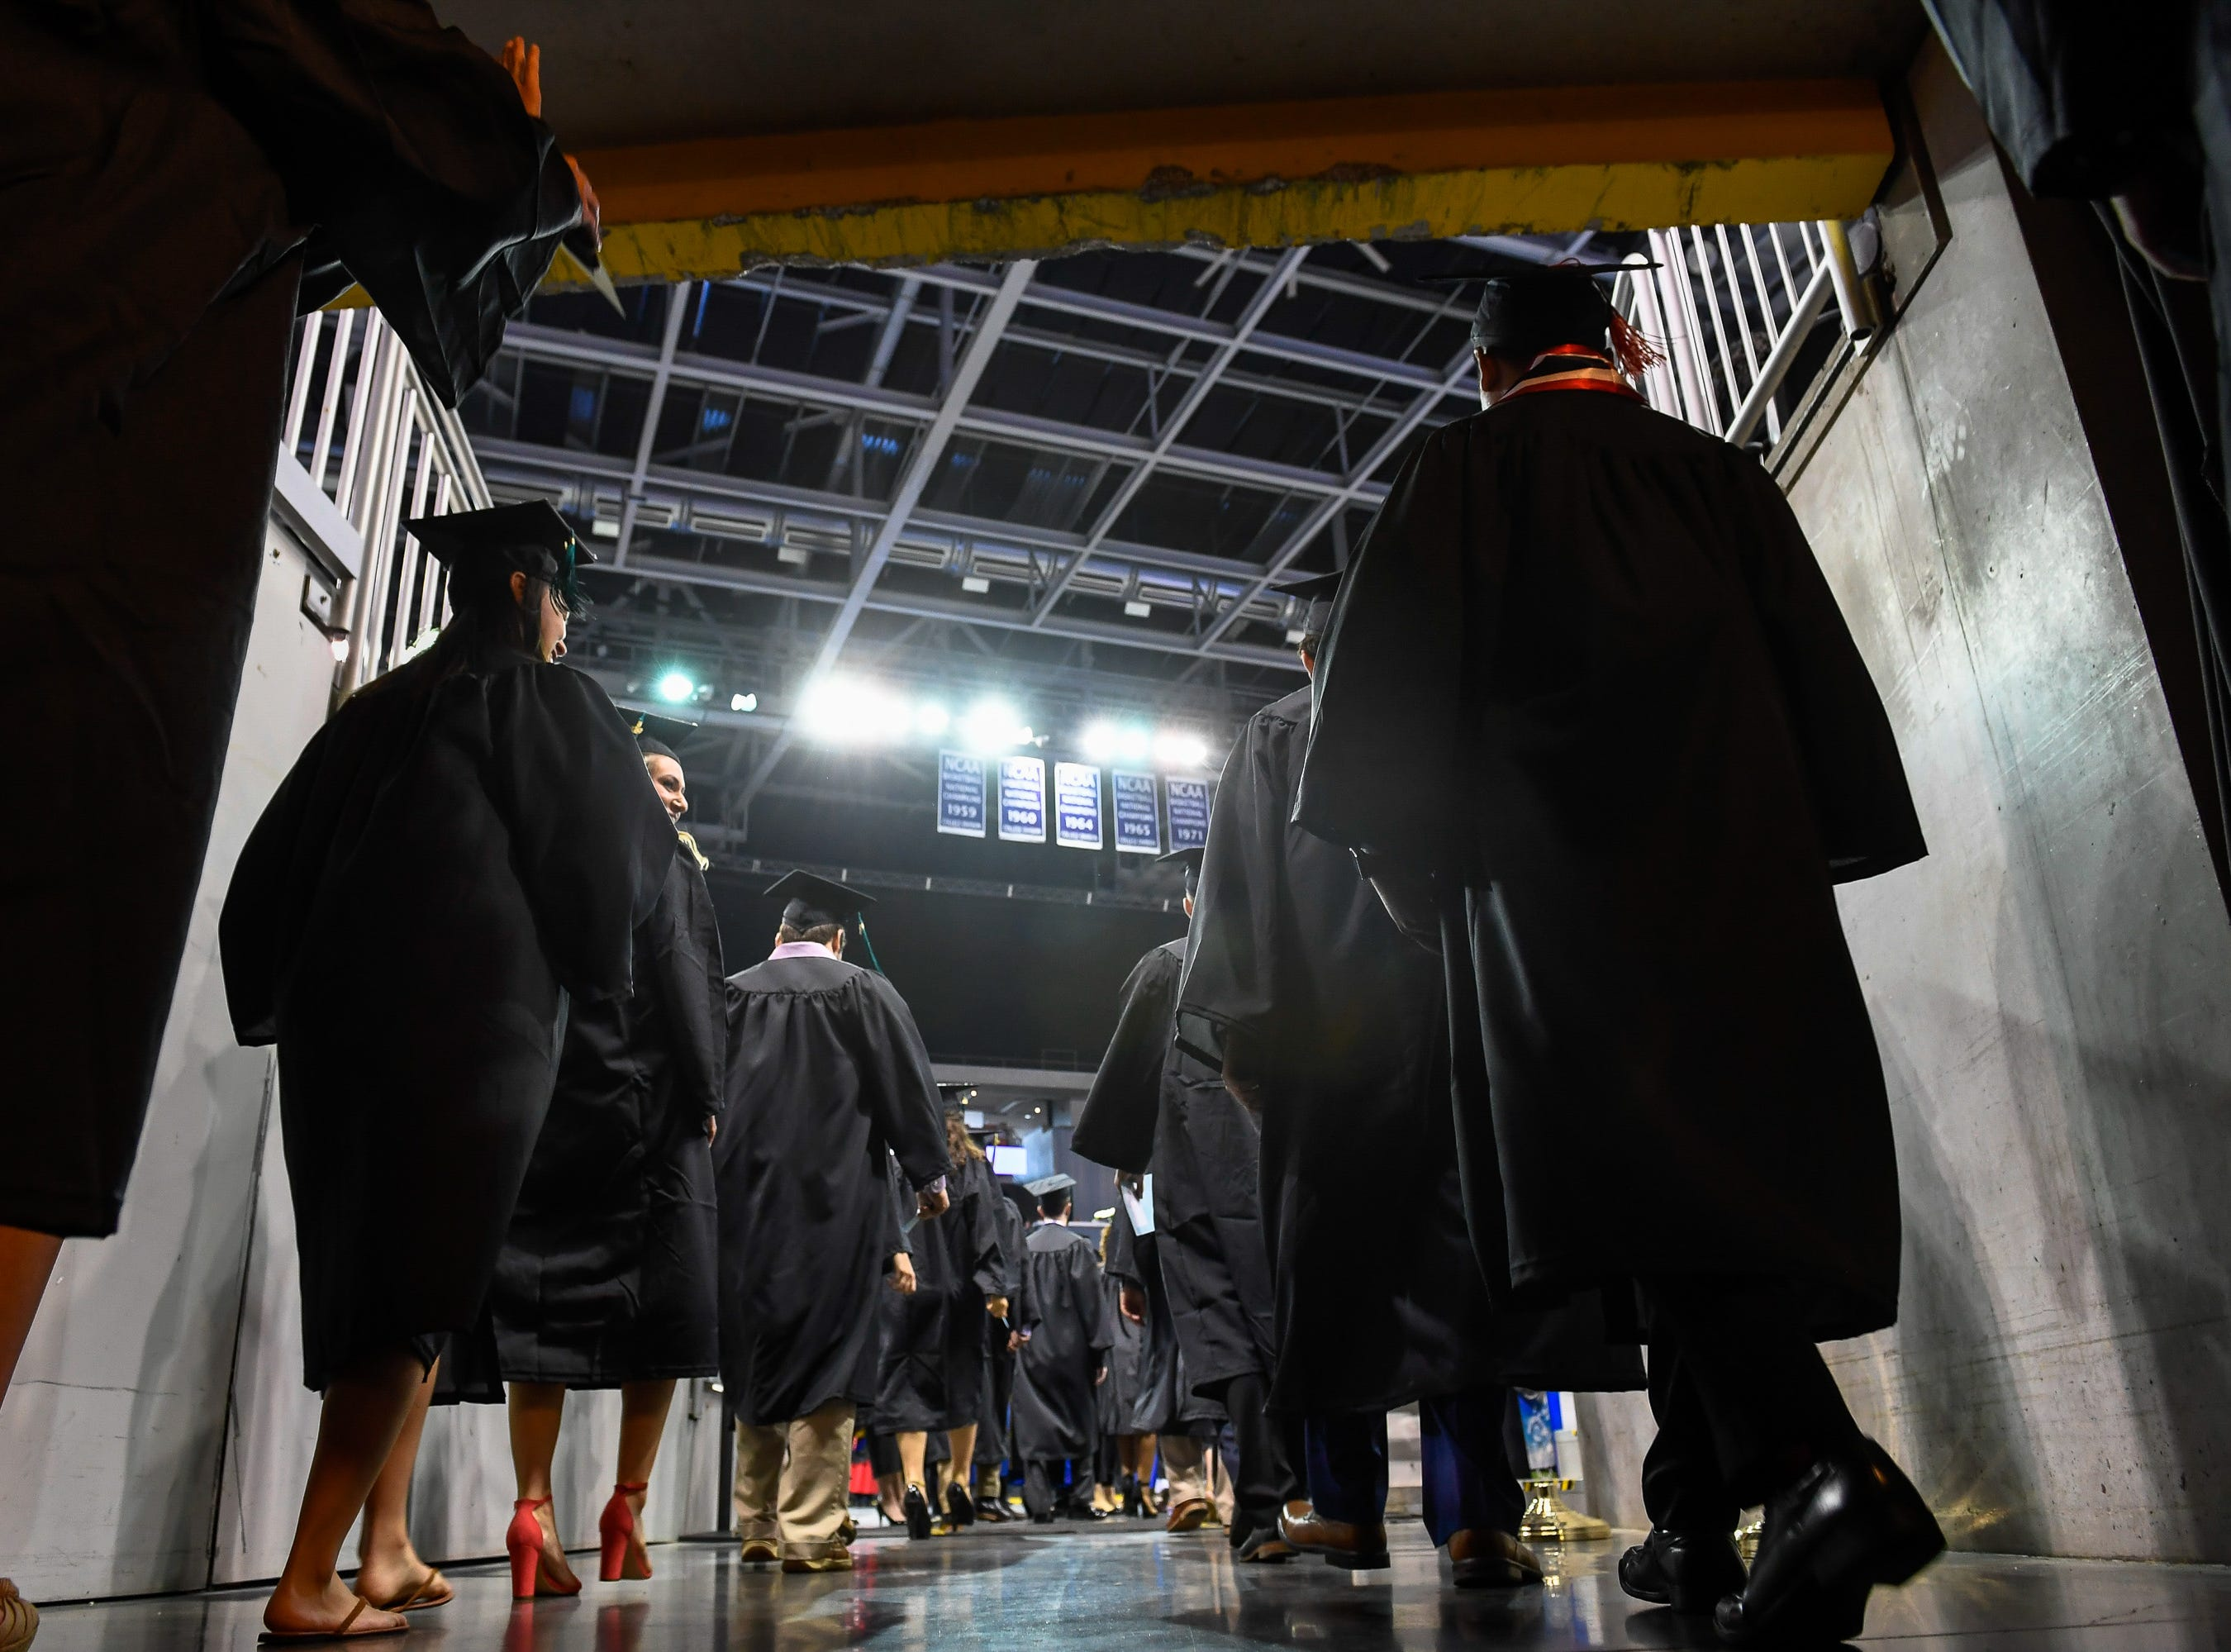 Graduates leave the tunnel during the opening procession during the University of Evansville's 161st commencement ceremony held at the Ford Center Saturday, May 11, 2019.